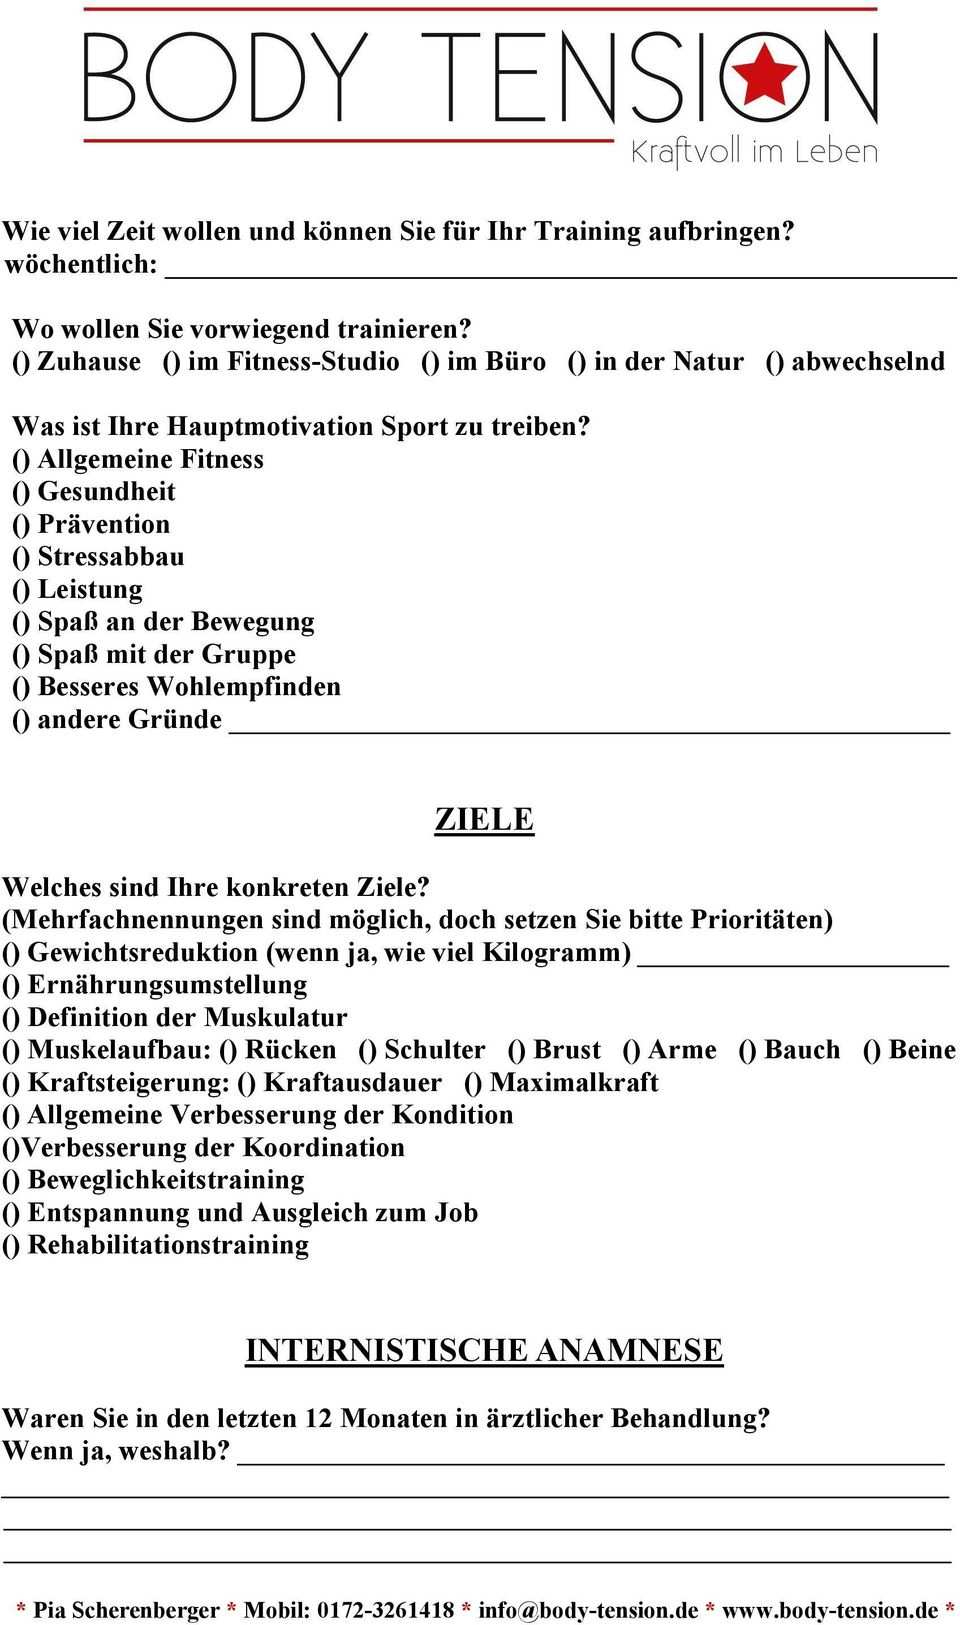 Personal Anamnesebogen Pdf Free Download